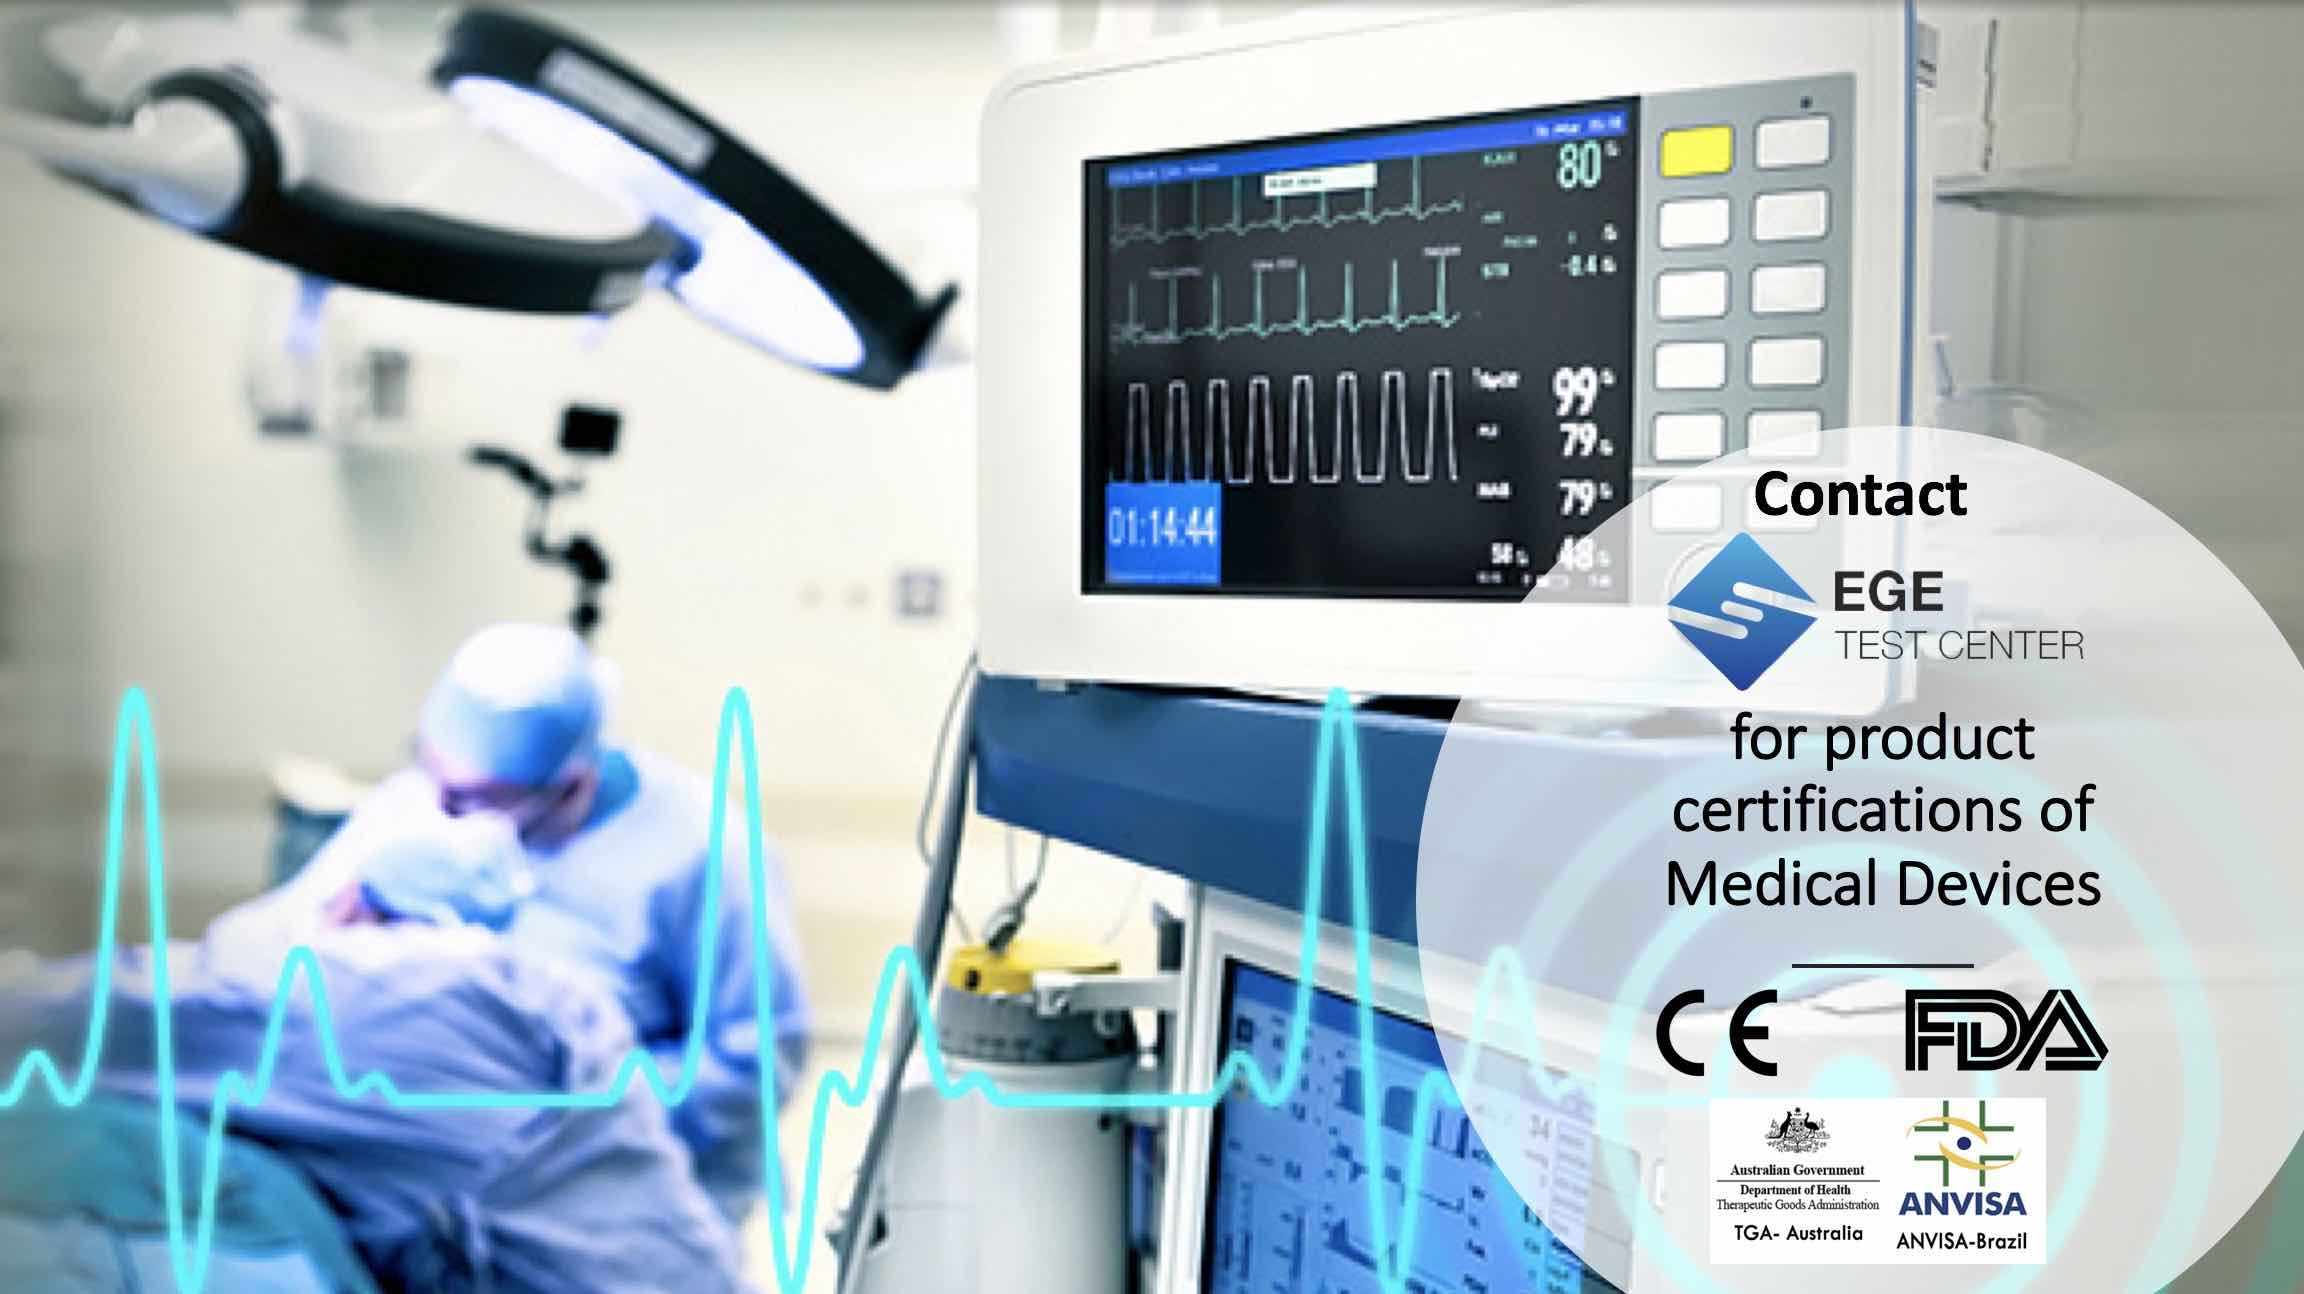 Product Certifications of Medical Devices | Ege Test Center